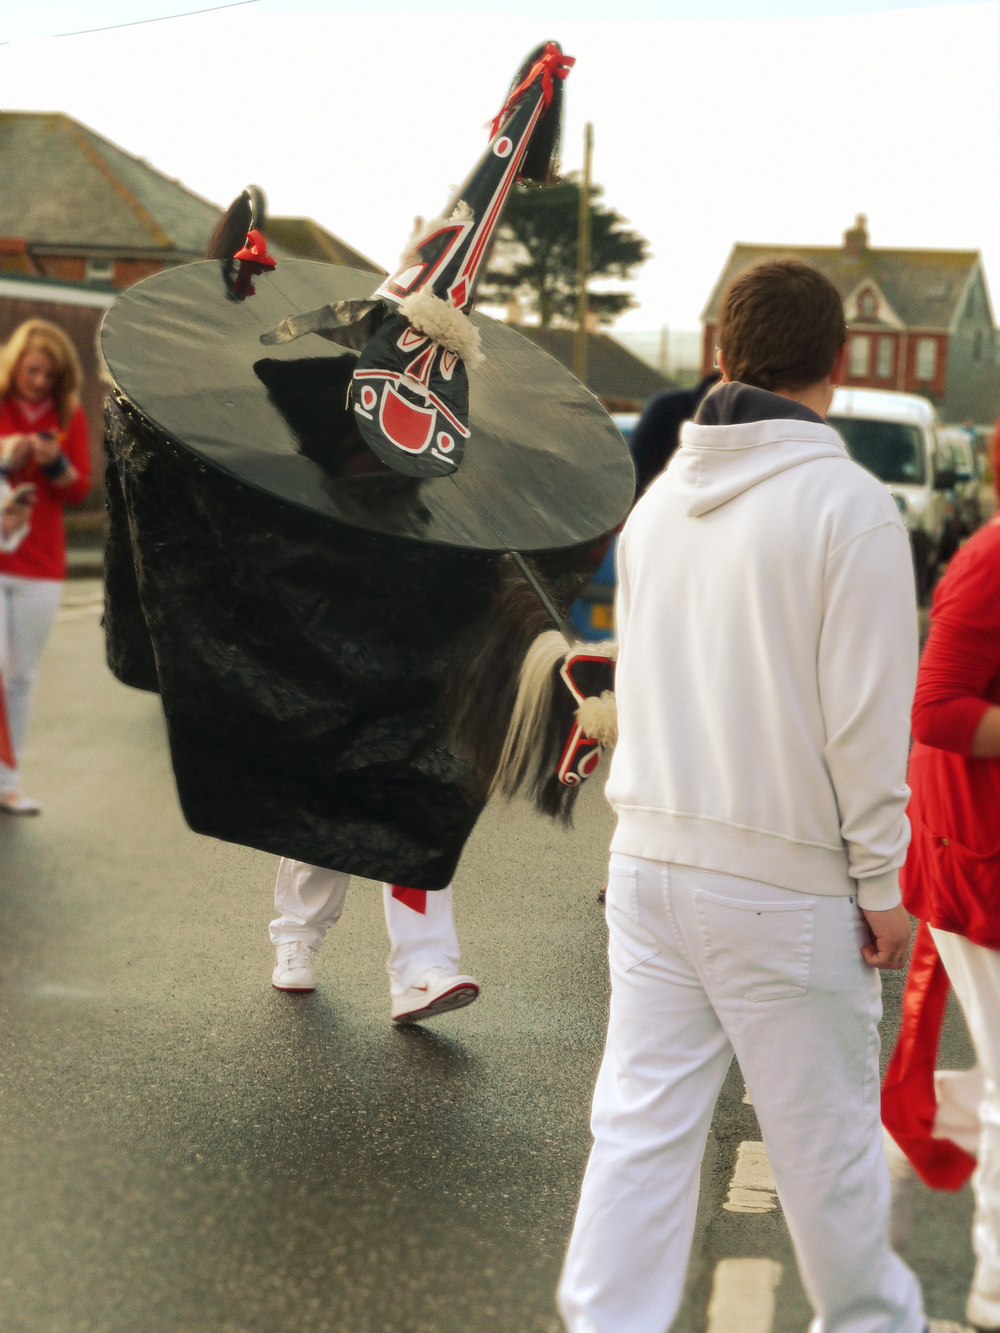 The Old Oss out for the Children's parade at dawn (around 6am). There is no word of irony or humour in the presence of the red and white Nike trainers, but rather demonstration of the degree of dedication to which the participants approach this festival.